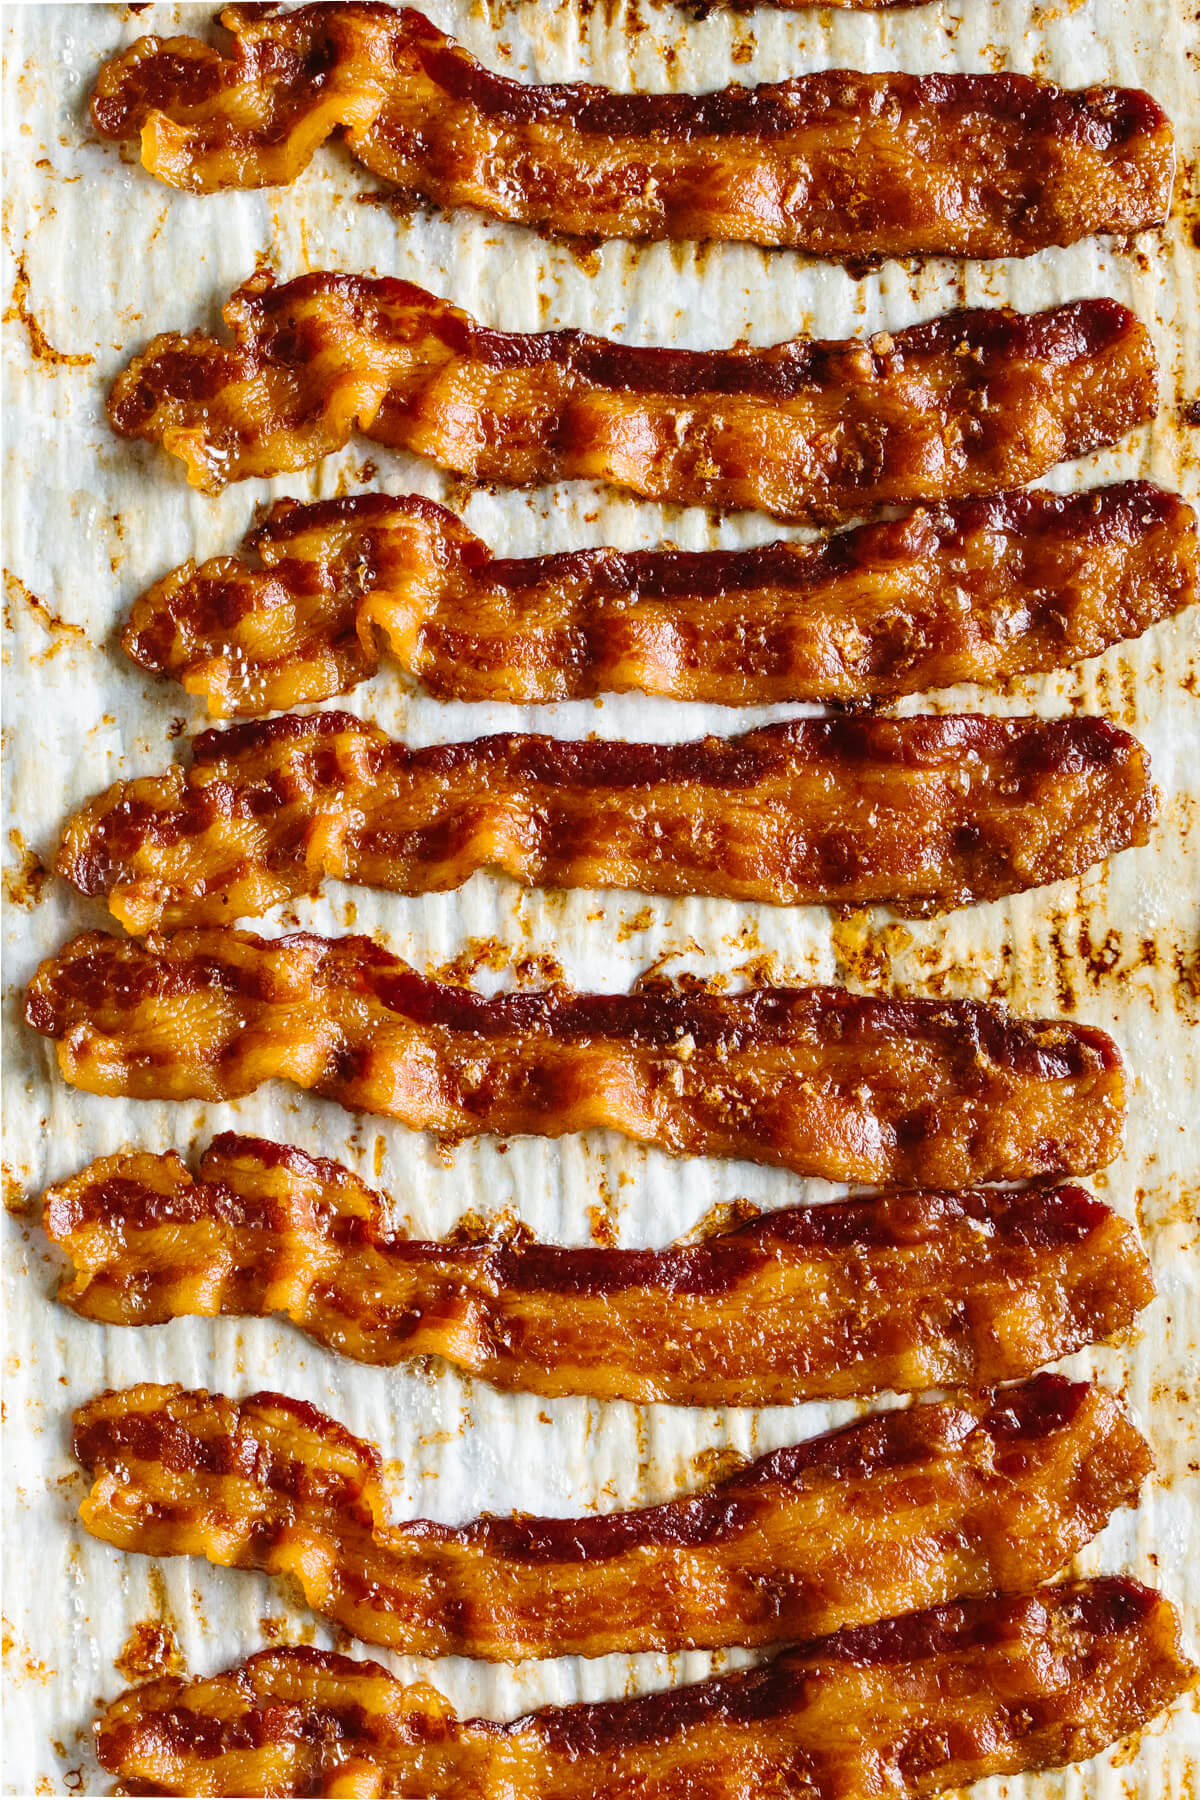 Slices of cooked bacon on a sheet tray.